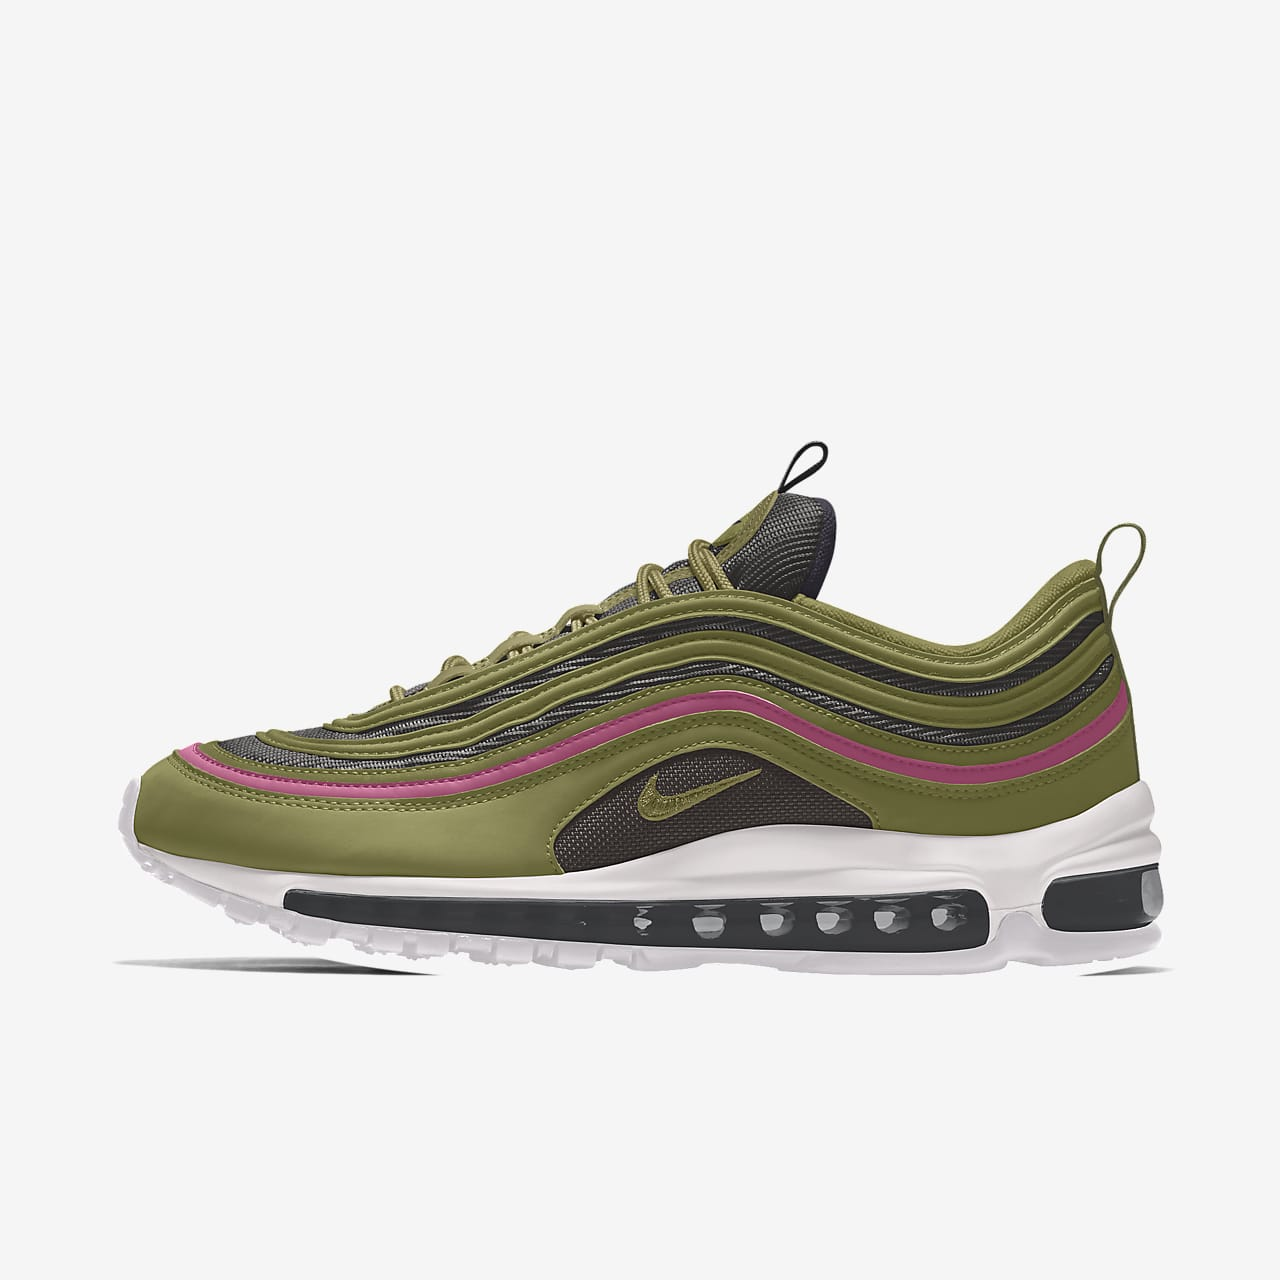 Nike Air Max 97 By You Custom Women's Lifestyle Shoe